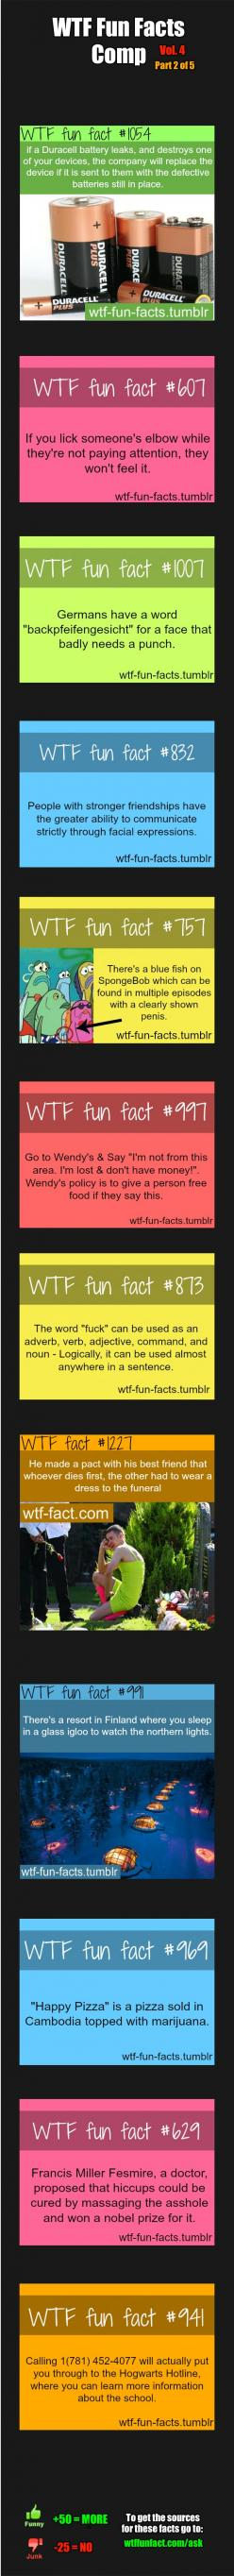 WTF Fun Facts Comp Vol. 4 Part 2: Funny Facts, Mindblown, Wtf Fun Facts, Facts Comp, German Word, Wtffunfacts Funny, Funny Wtf Facts, Wtffunfacts Weird, Funny Fun Facts